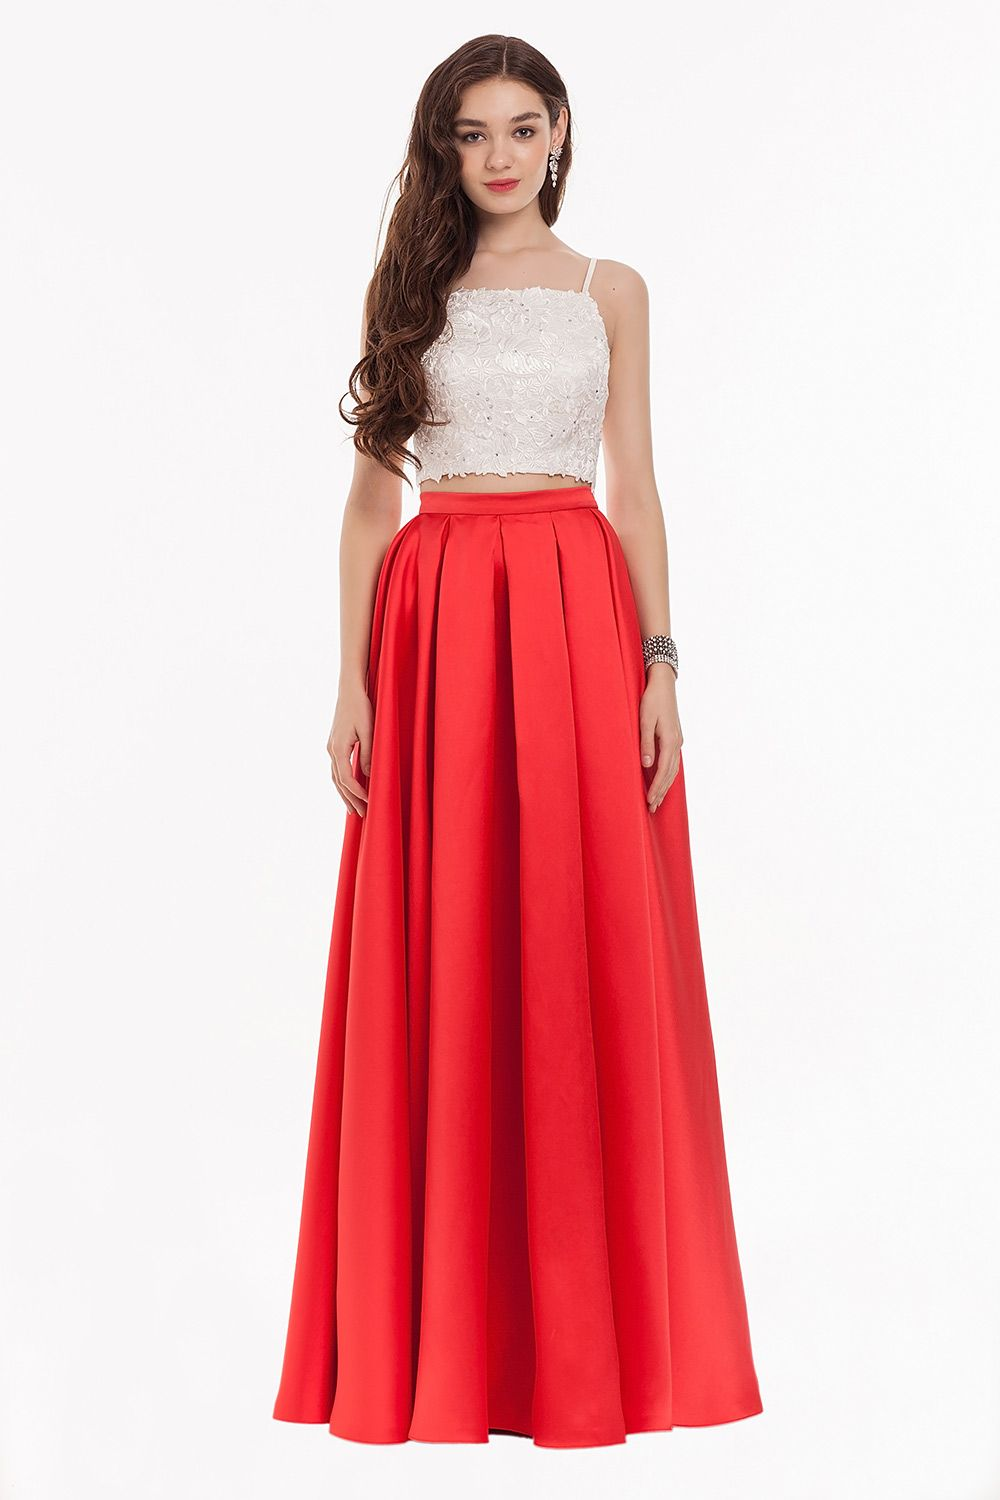 Quincenara Dresses Halter Neck Red